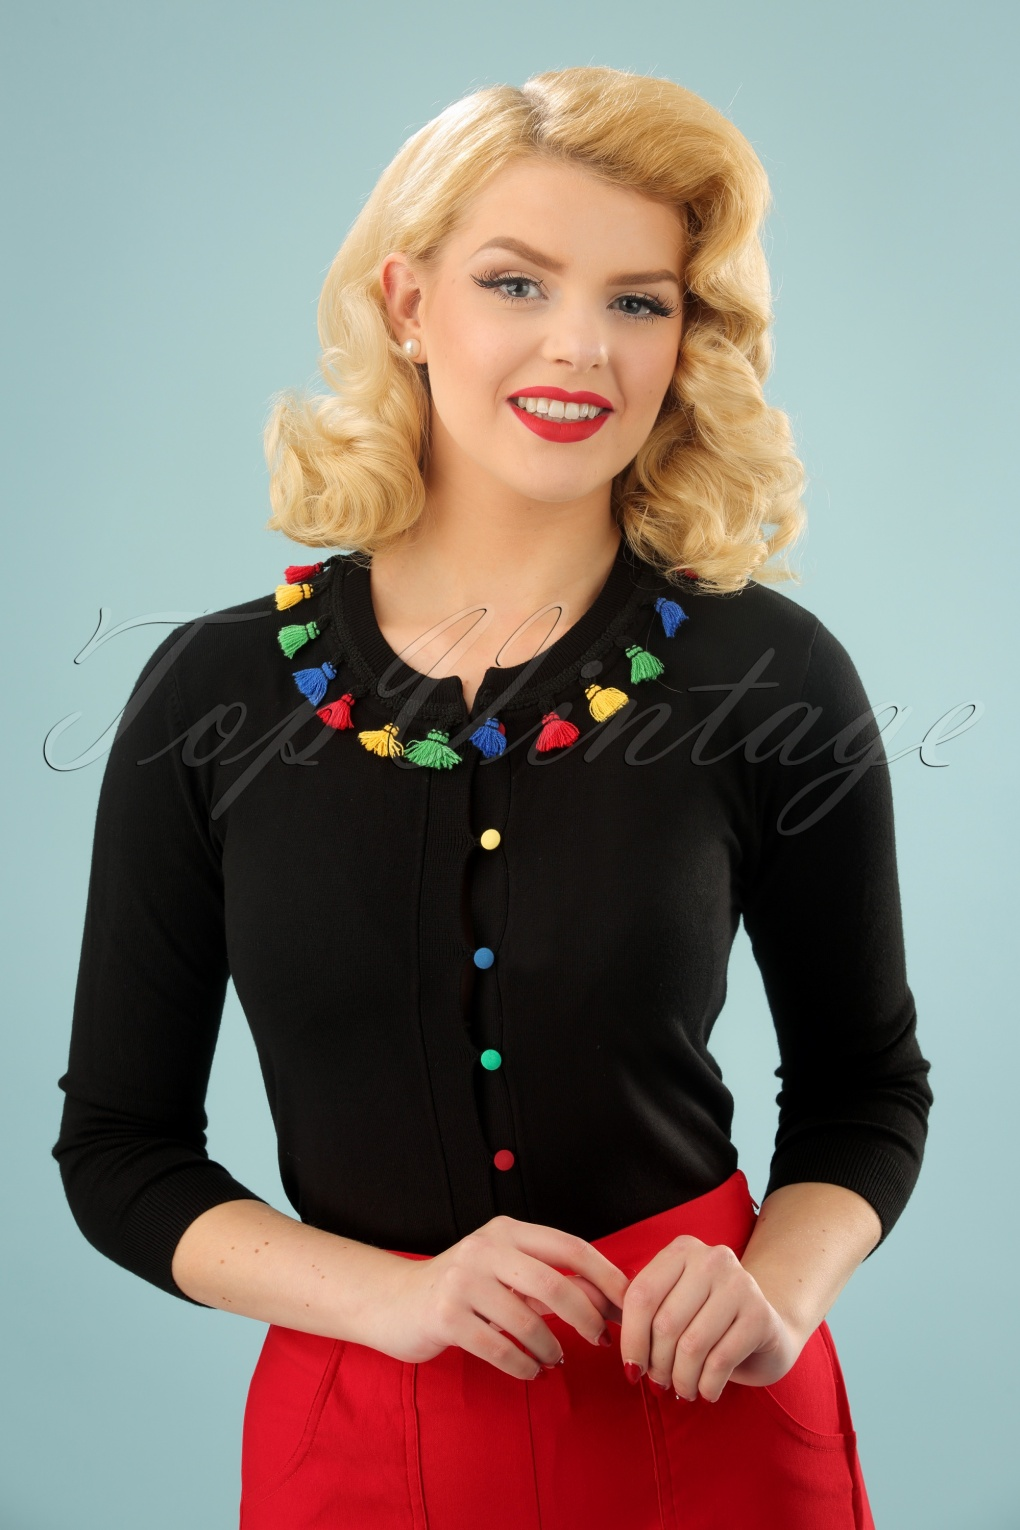 Vintage Sweaters: Cable Knit, Fair Isle Cardigans & Sweaters 50s Maria Tassle Cardigan in Black £35.48 AT vintagedancer.com